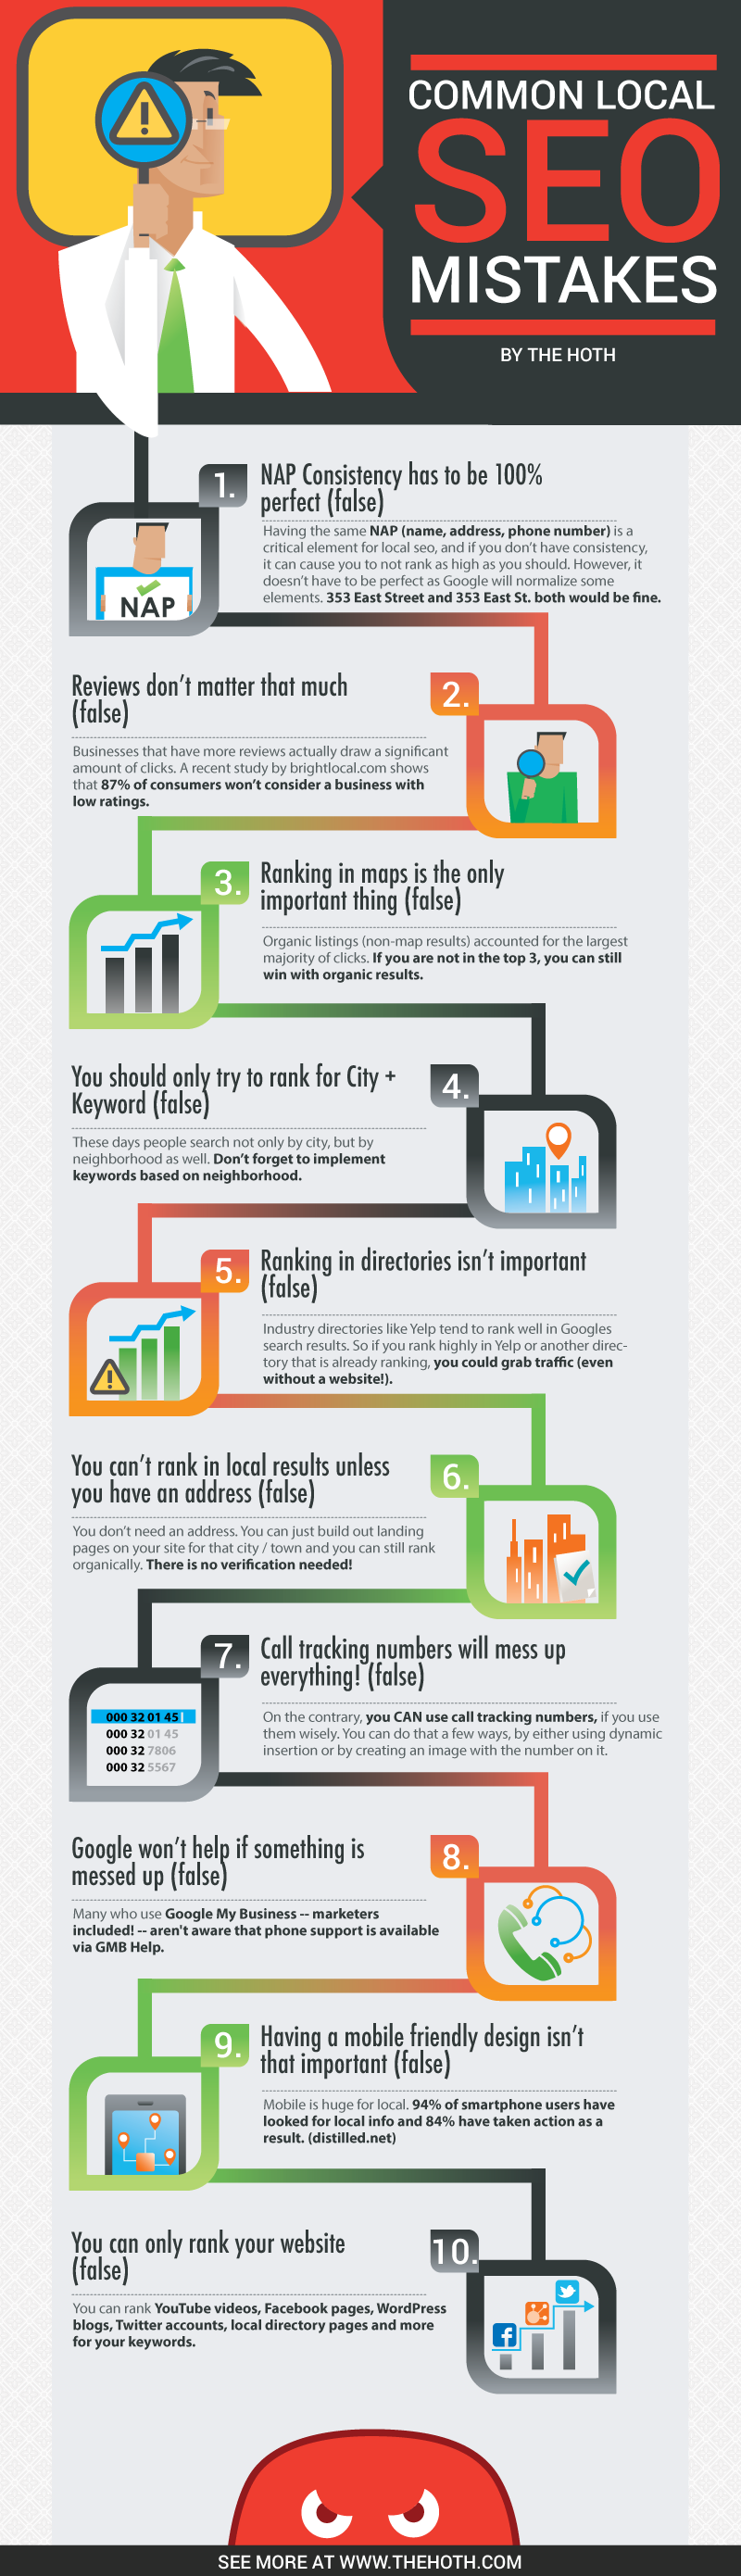 Common-Local-SEO-Mistakes-Infographic-The-HOTH1.png